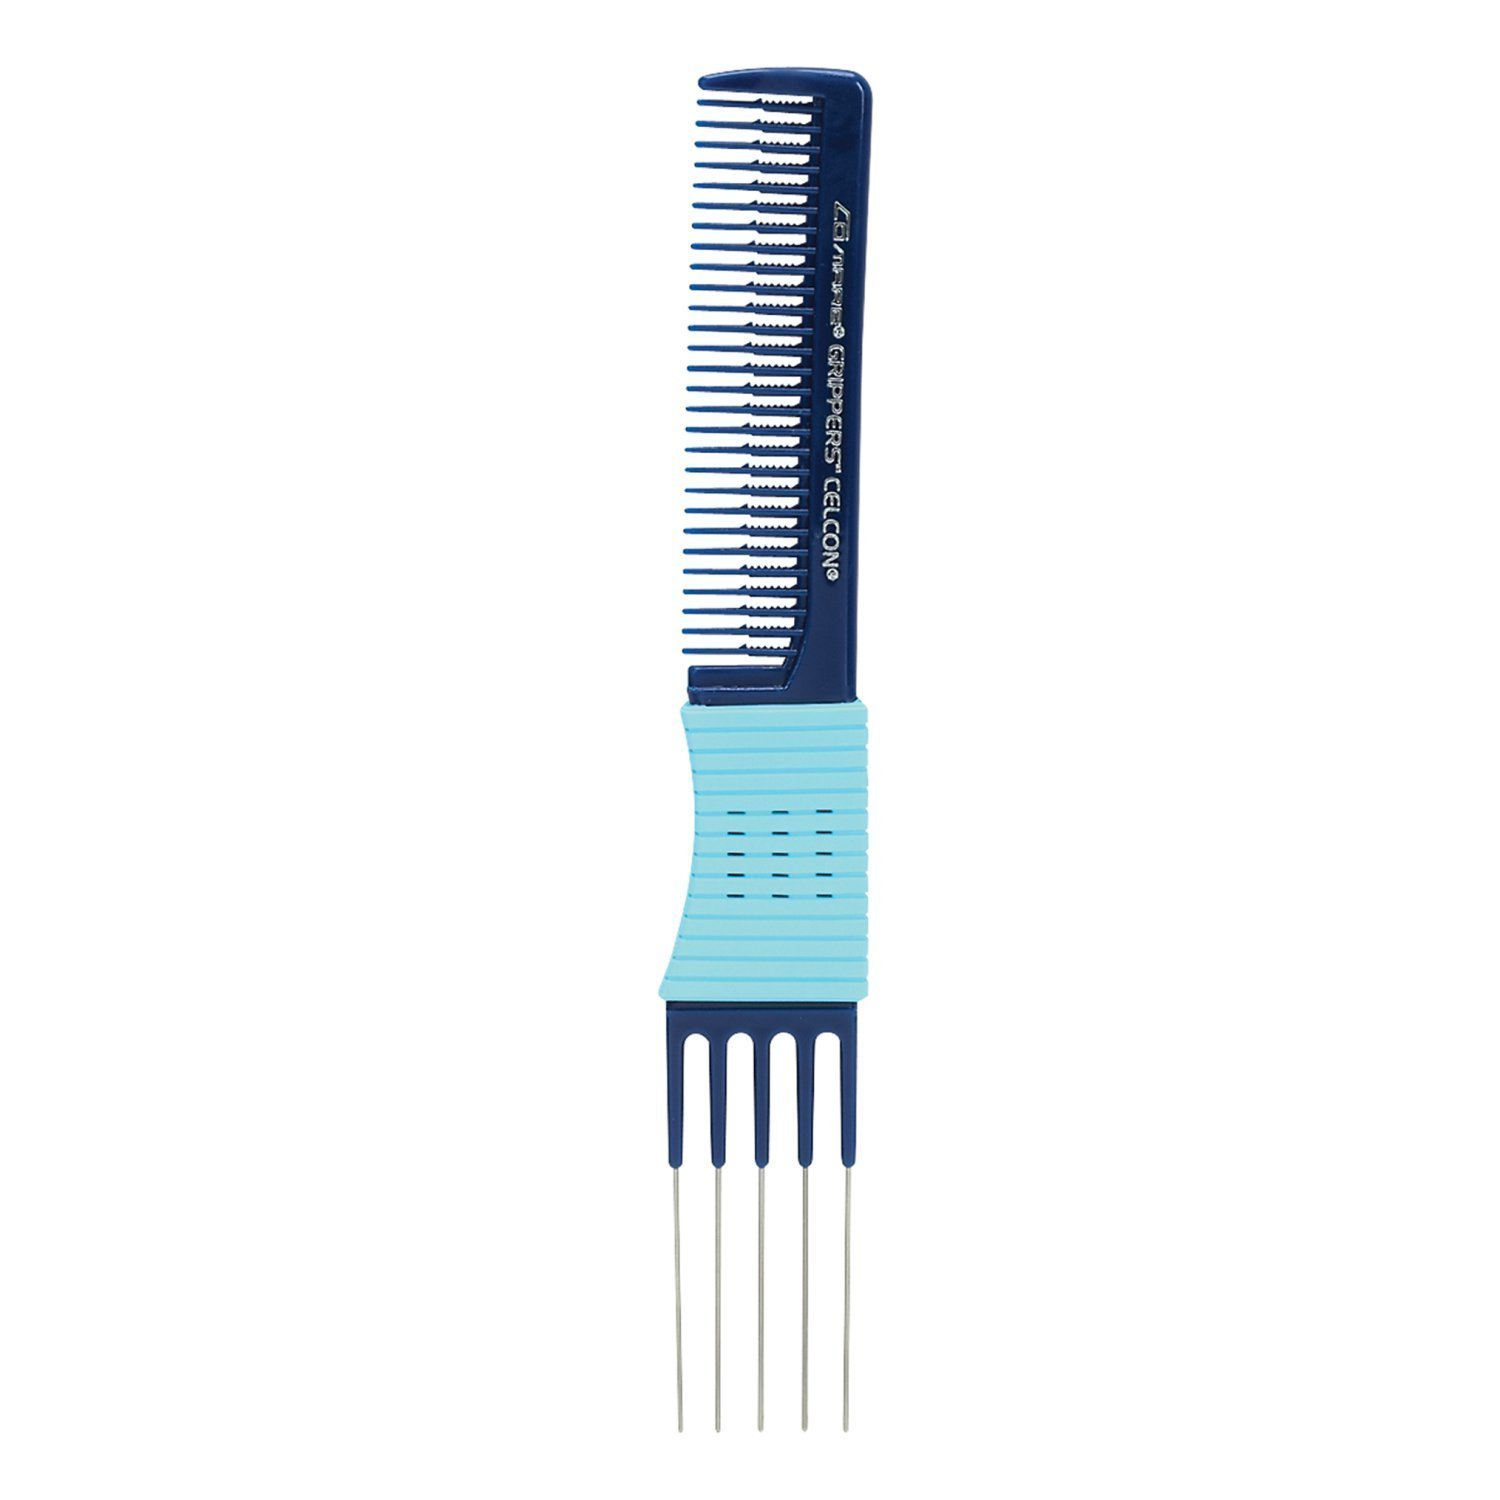 Comare Mark II Gripper Comb with Stainless Steel Lift, CCP352, 9.6 Ounce